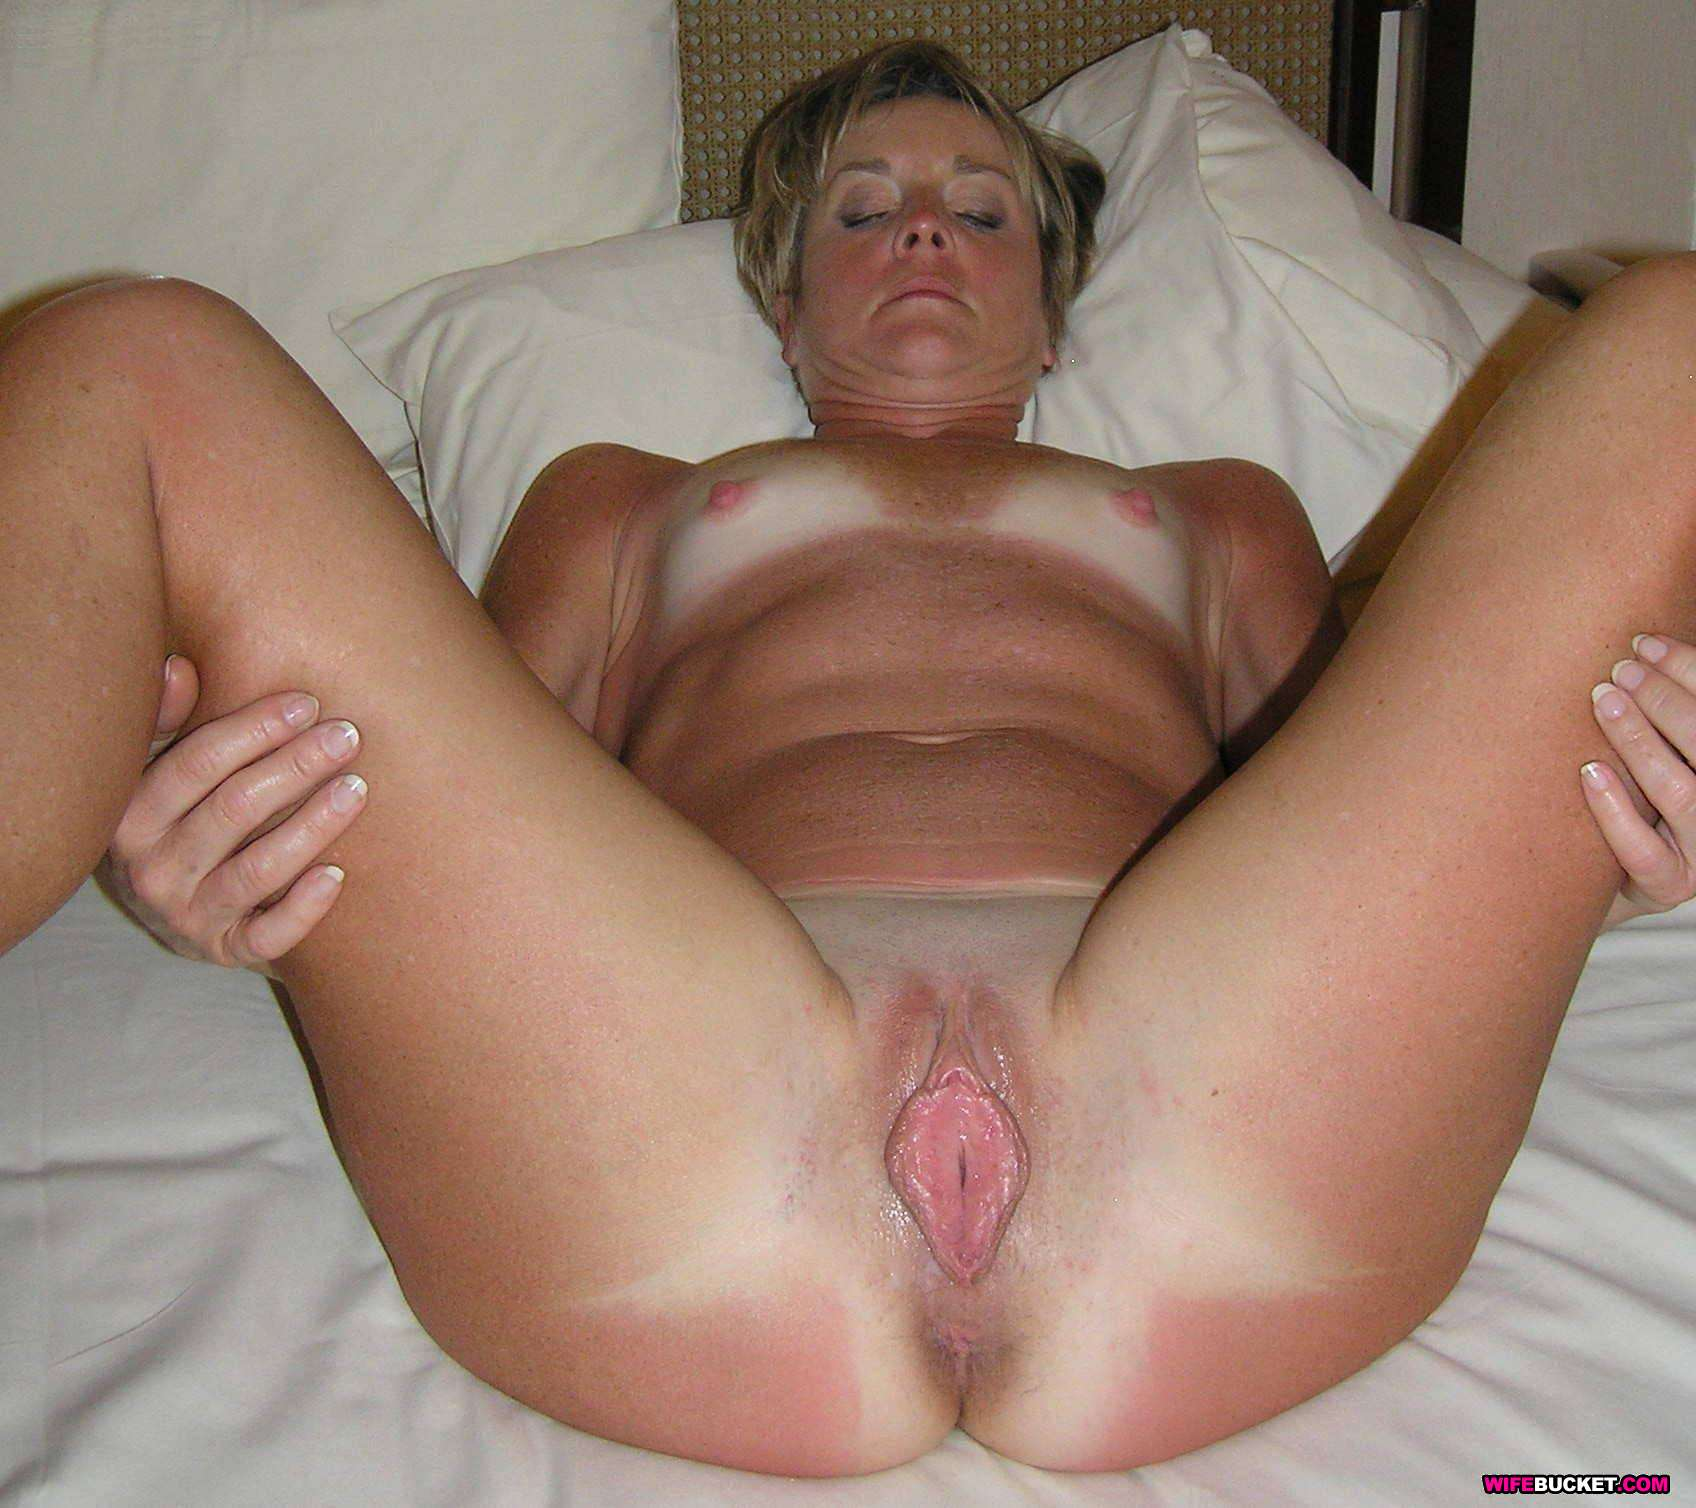 Nudist photo wife